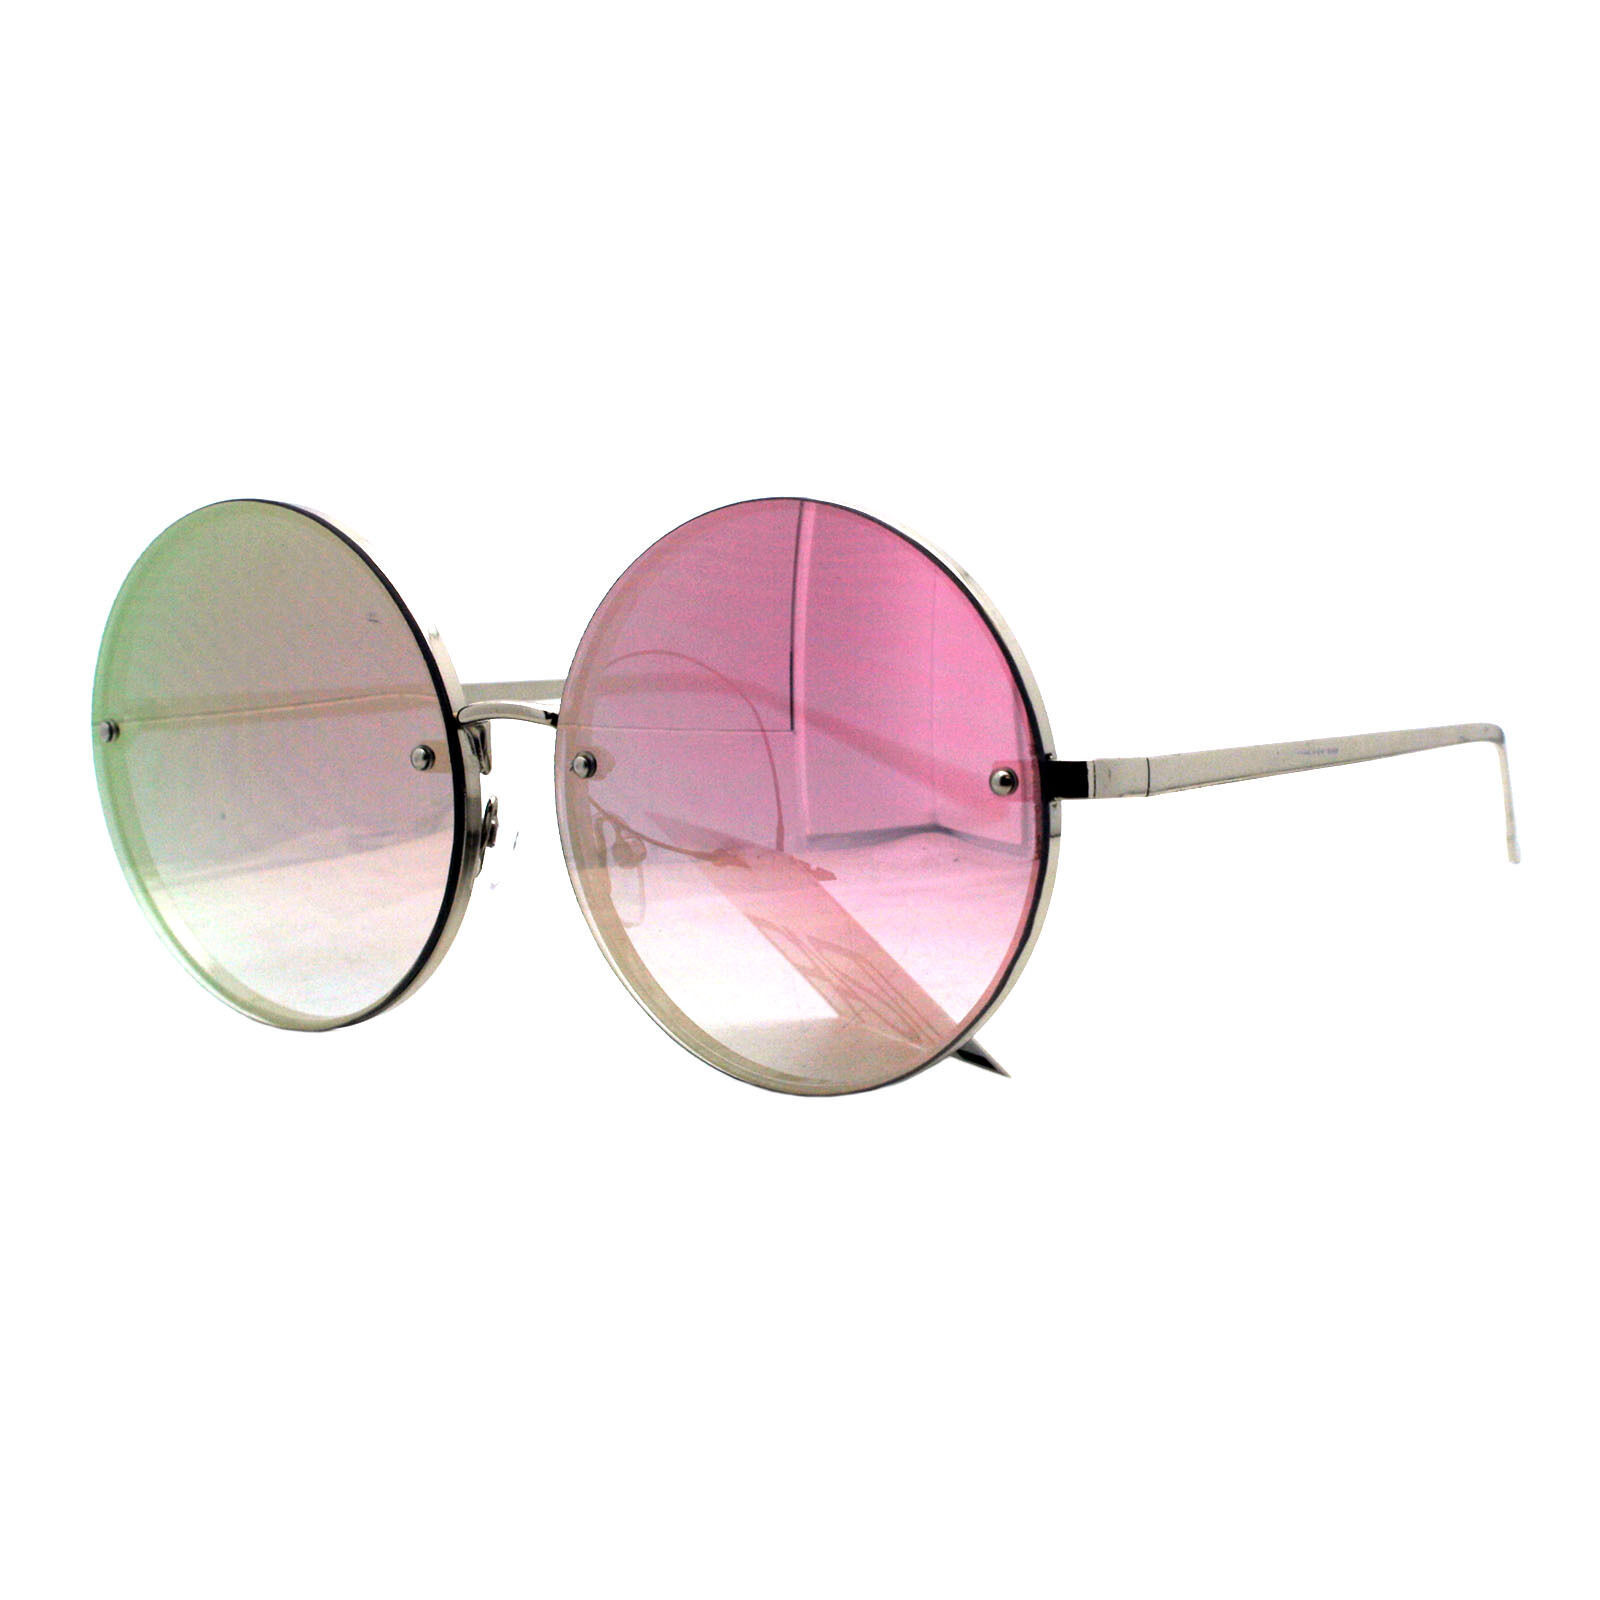 PASTL Super Oversized Round Sunglasses Womens Pink Mirror Lens UV 400 image 12